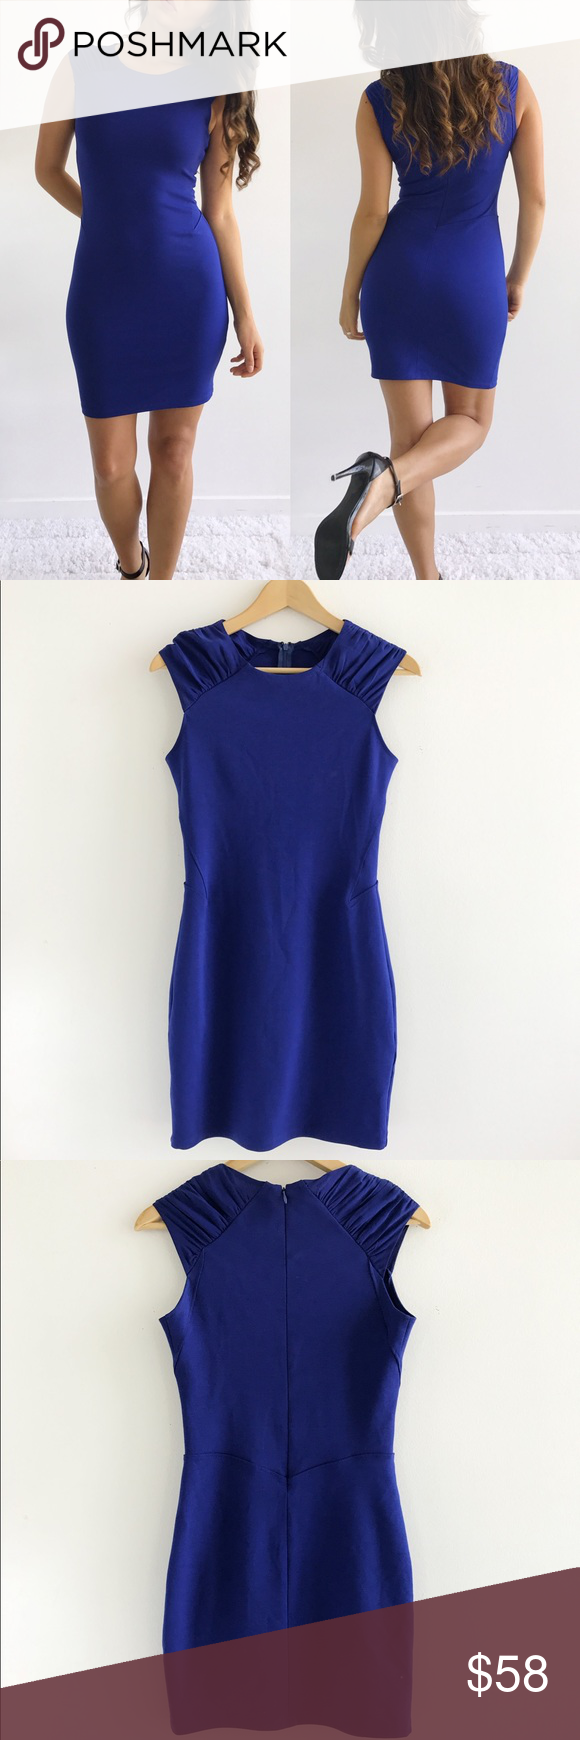 "Barneys New York Royal Blue Dress Barneys New York Royal Blue Dress! Excellent condition. Super comfortable and stretchy. Fitted. 100% silk shoulders. Concealed back zipper. Rayon Polyester spandex blend. Chest-31"" waist-27"" hips-34"" length-34.5"" size 2. Barneys New York Dresses Mini"